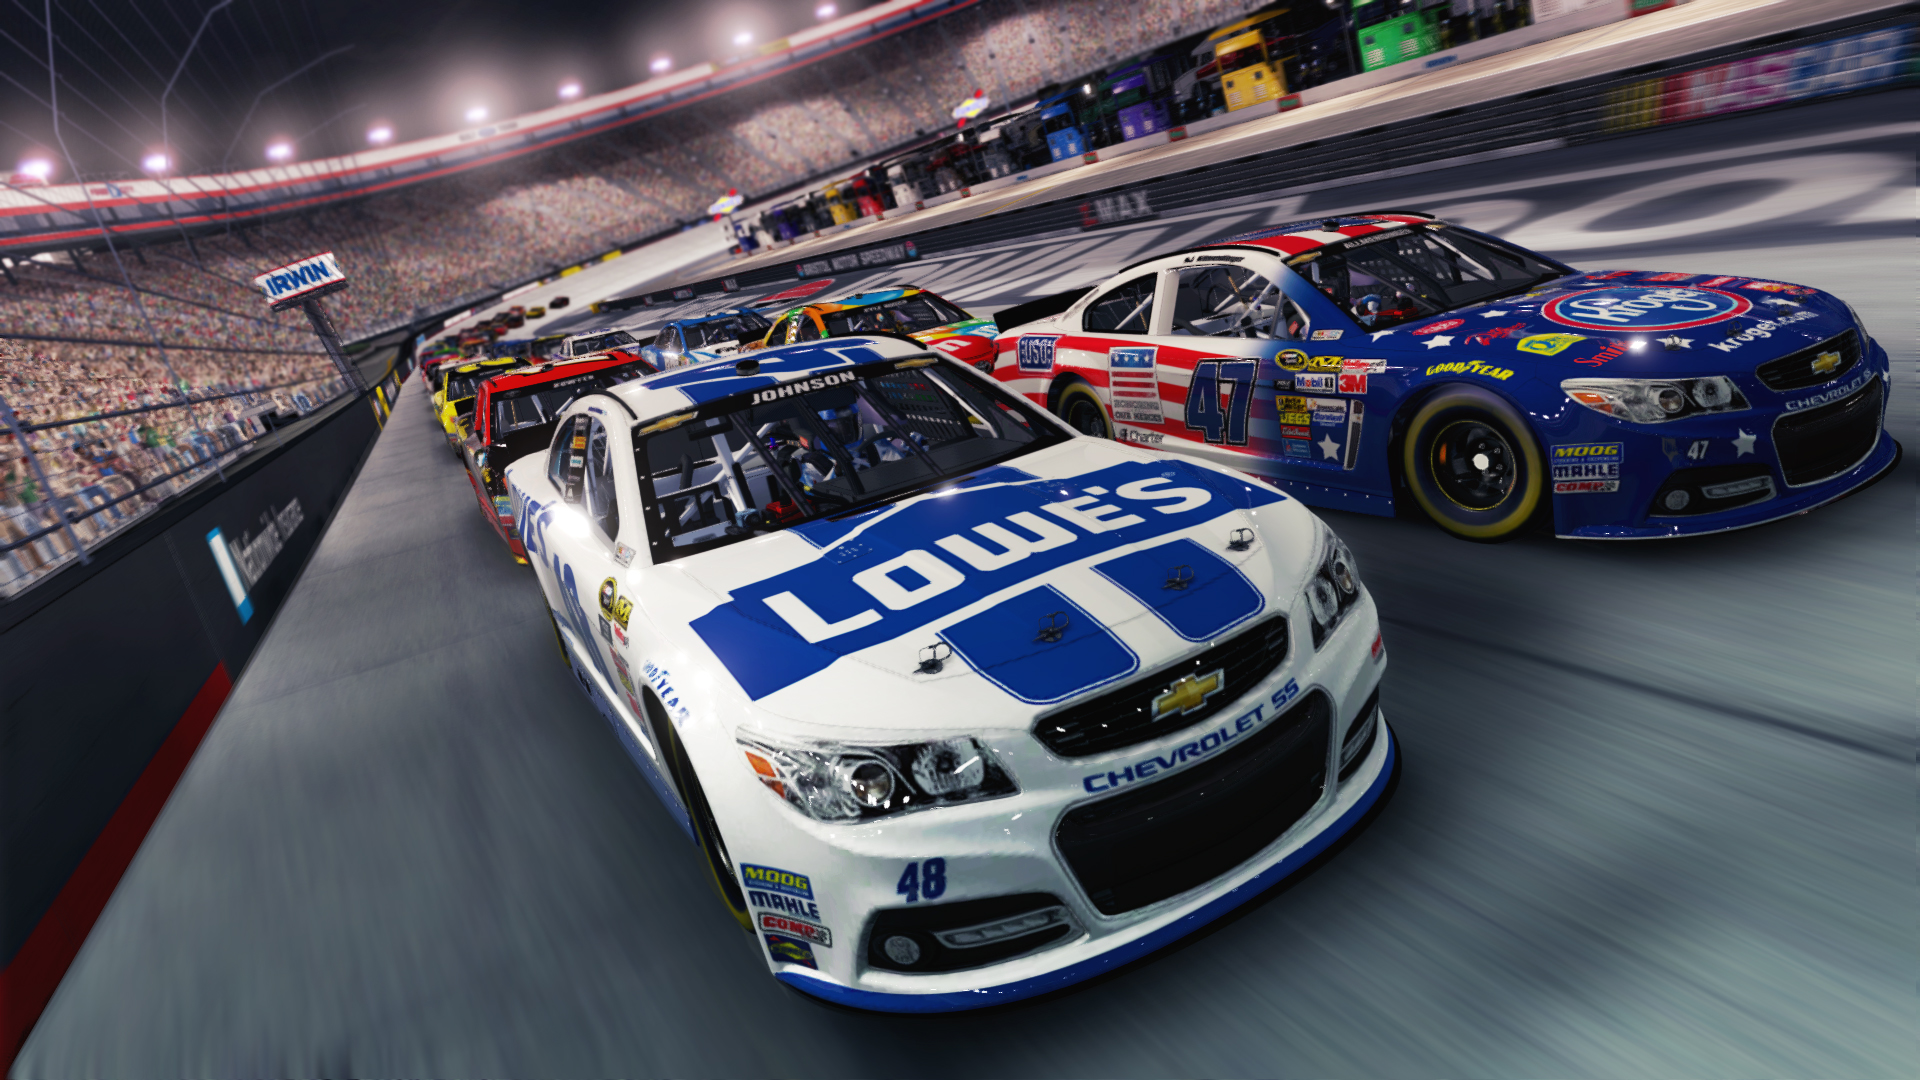 NASCAR HD Wallpaper   Background Image   1920x1080   ID:490175 - Wallpaper Abyss